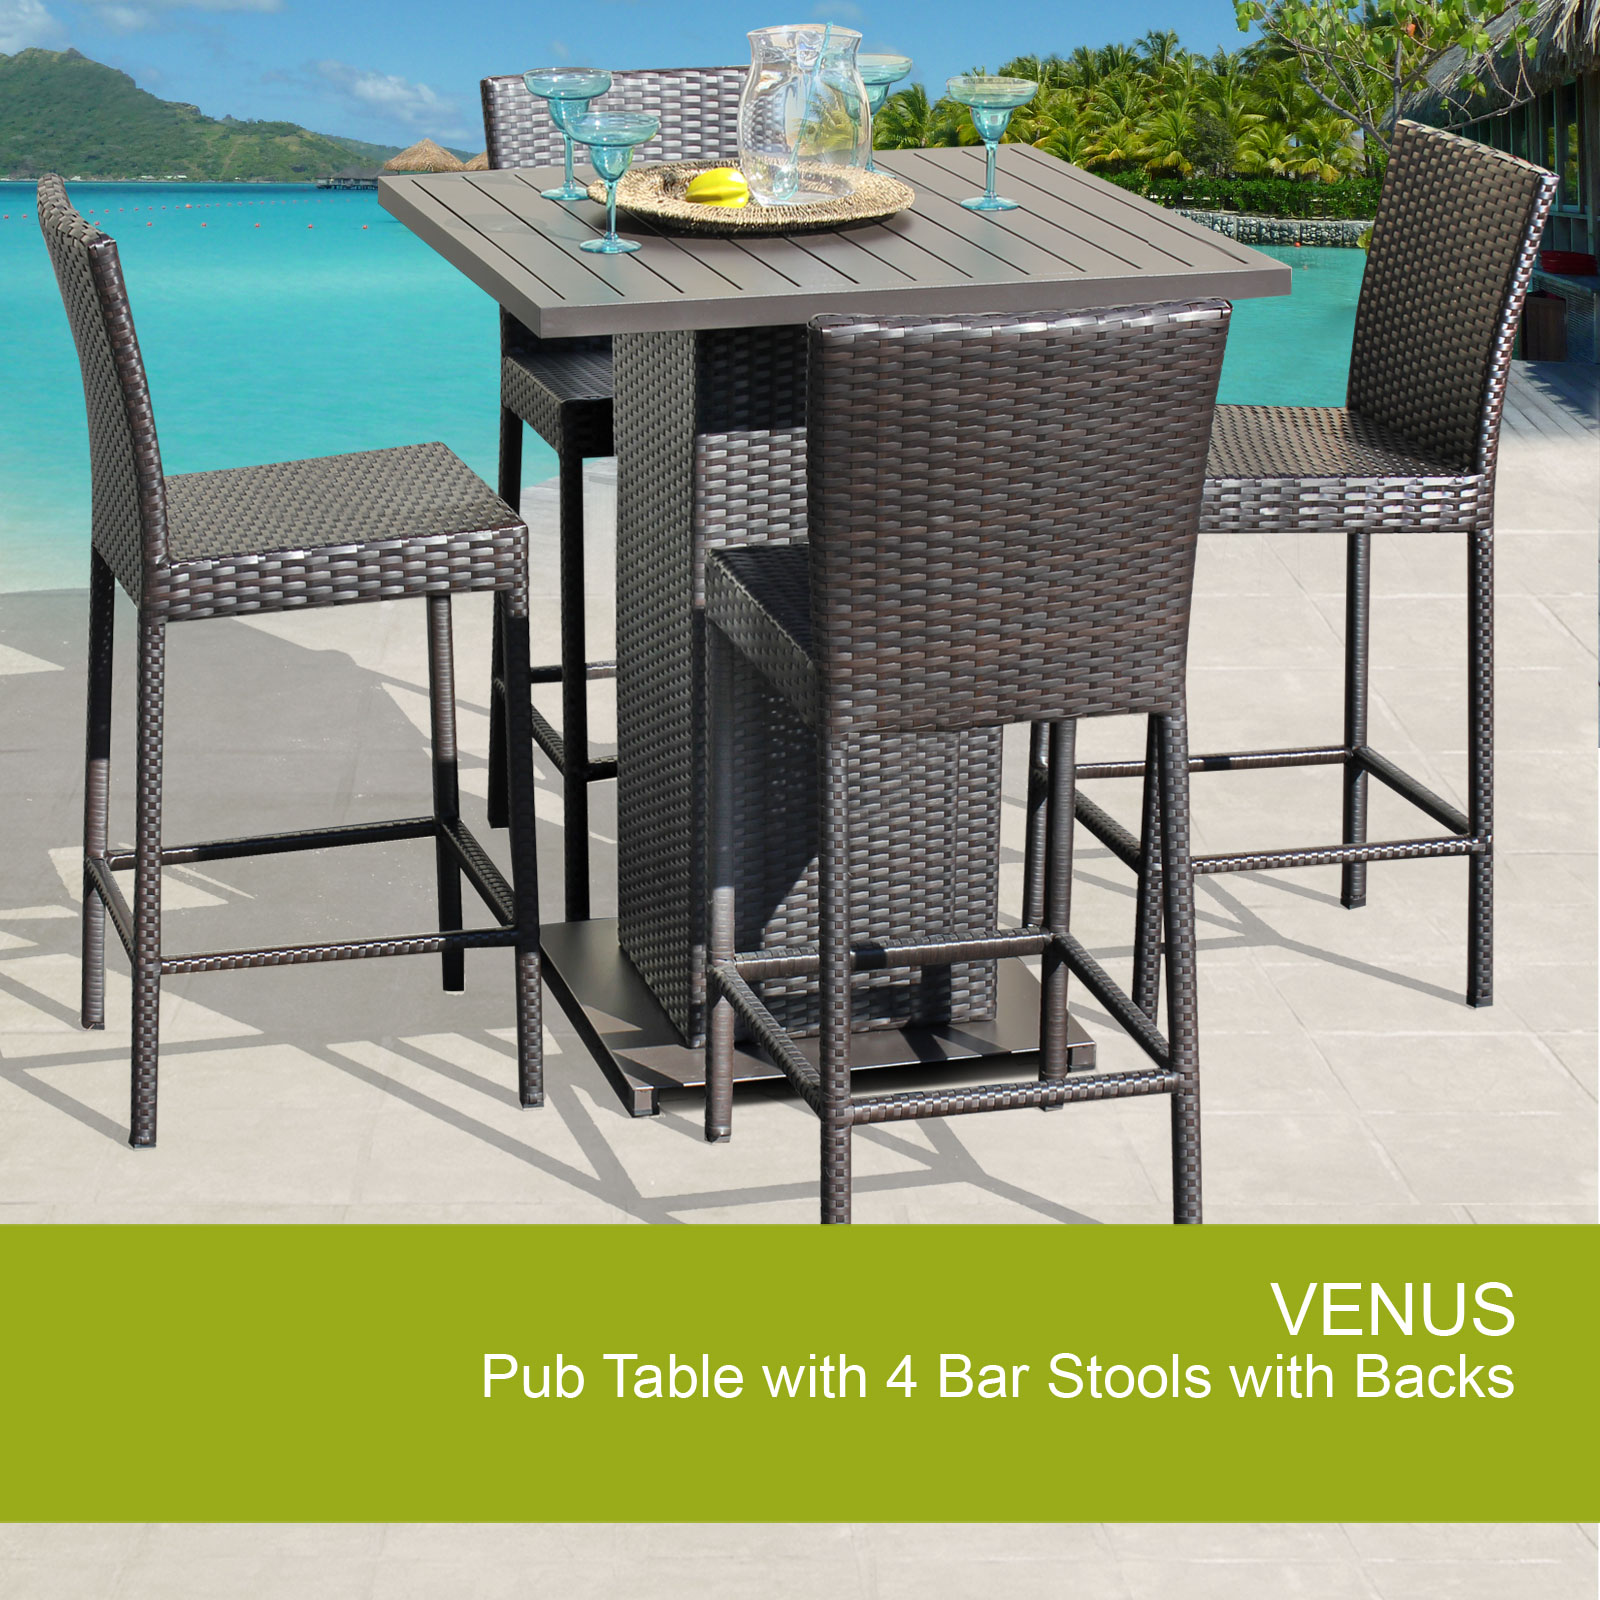 Venus Pub Table Set With Barstools 5 Piece Outdoor Wicker Patio Furniture    Walmart.com